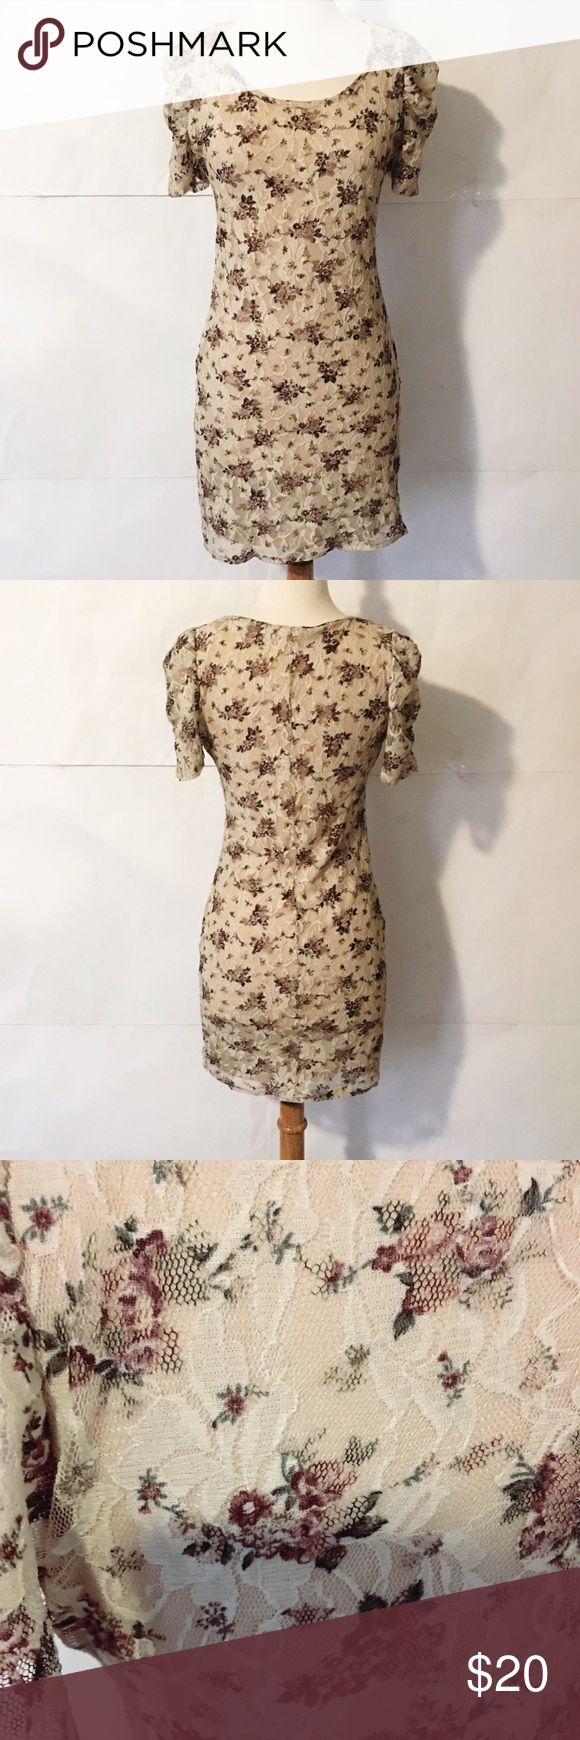 Final PriceCut Forever 21 Lace dress with nude insert. Floral print. Good used condition. Forever 21 Dresses